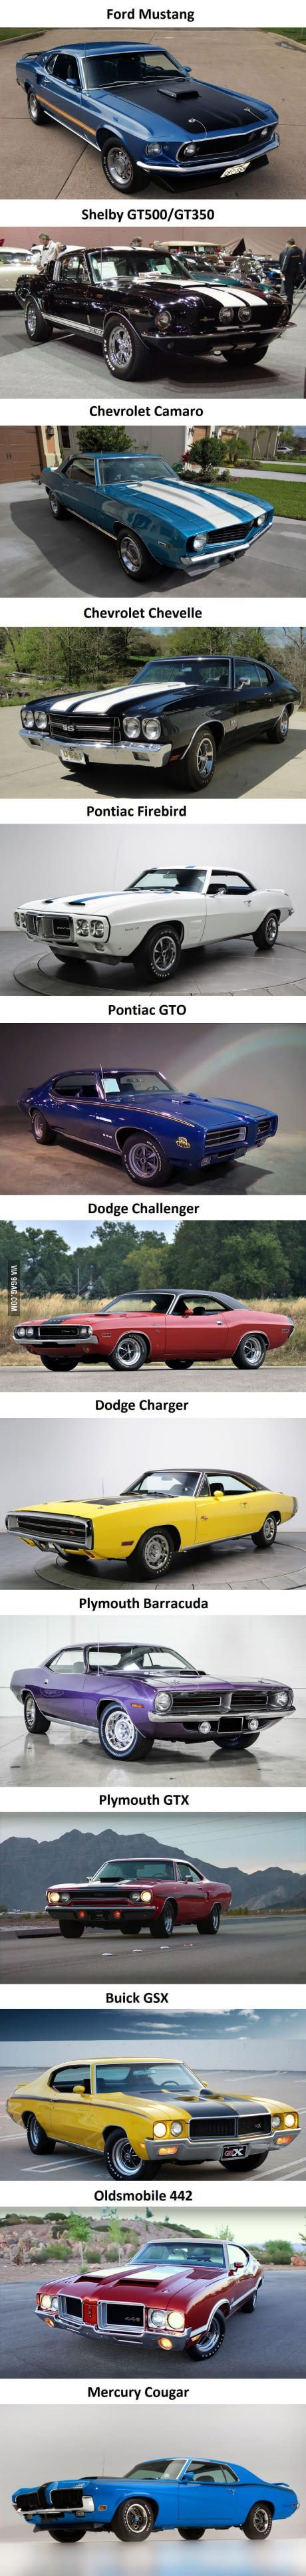 The Most Iconic Muscle Cars http://classic-auto-trader.blogspot.com